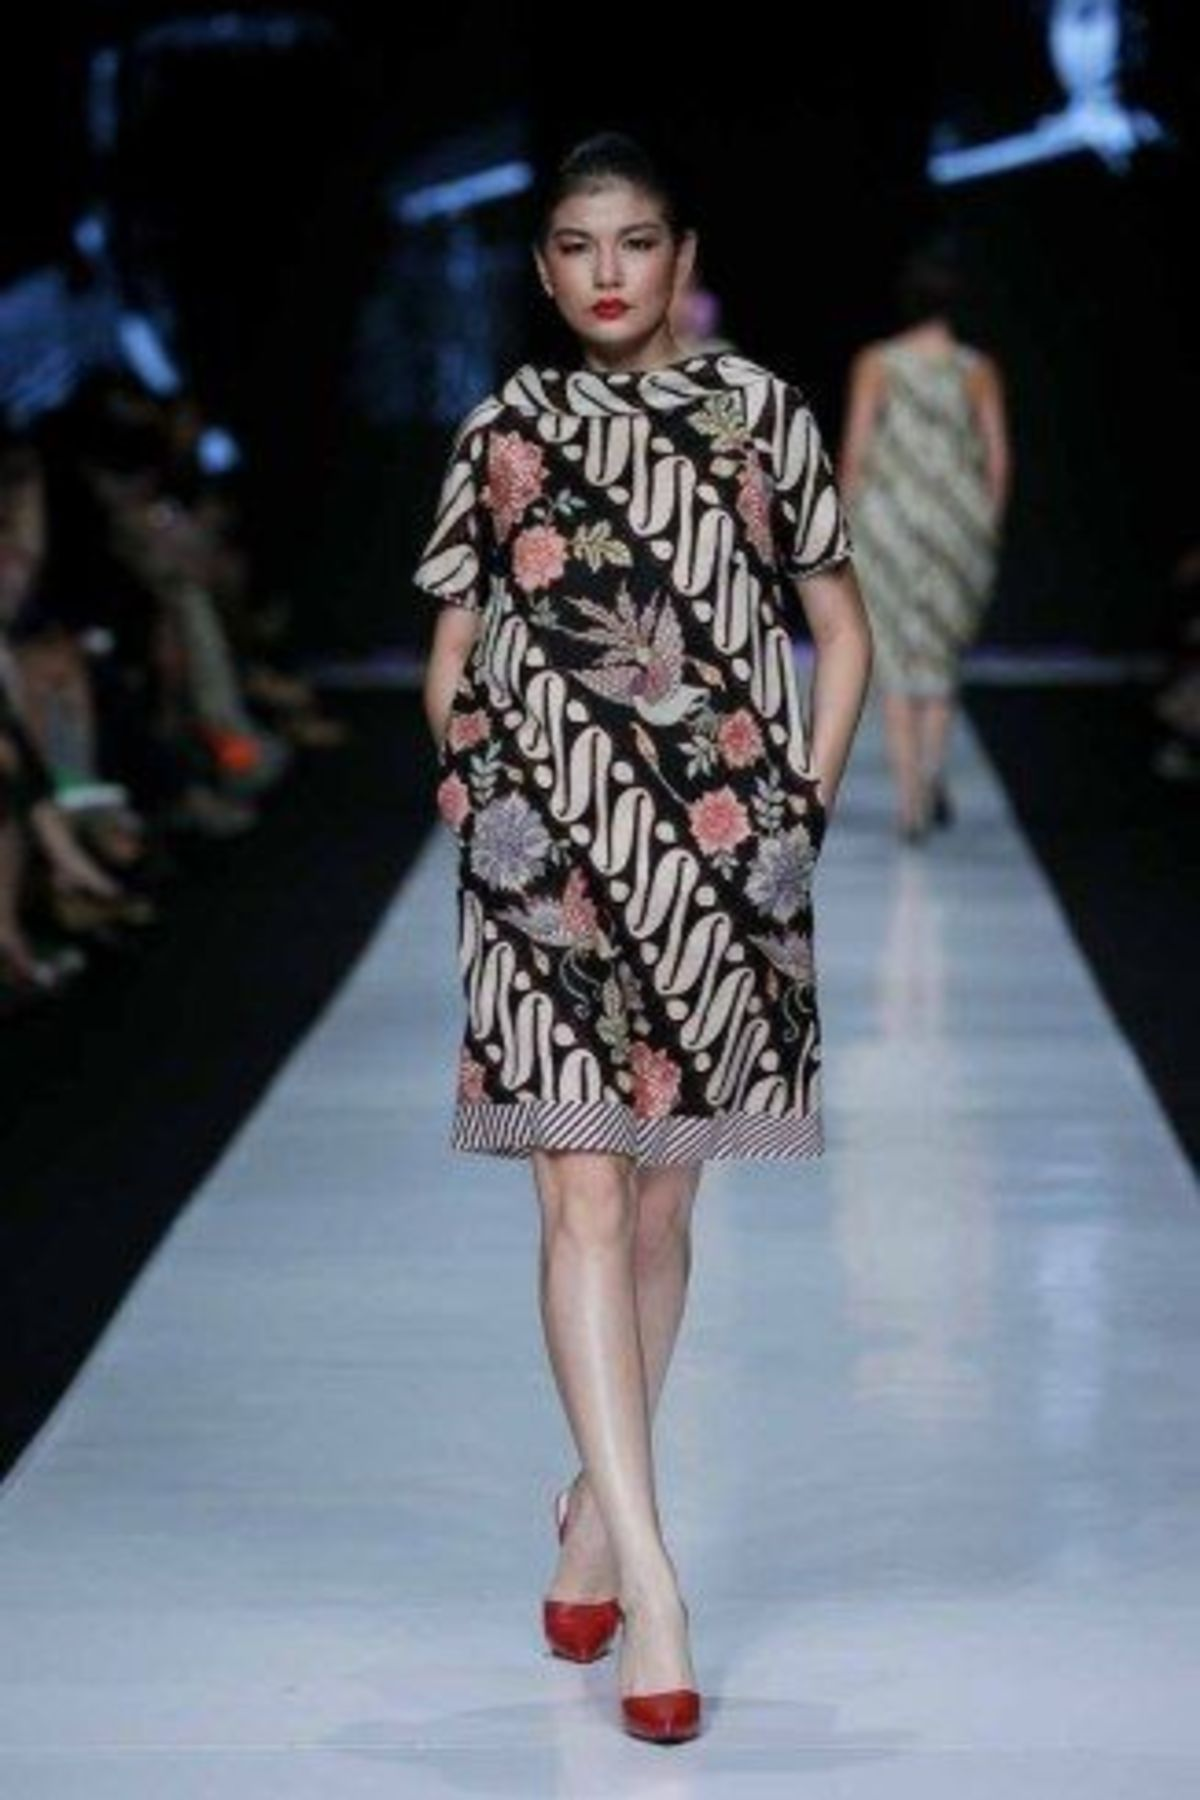 JAKARTA, INDONESIA – OCTOBER 21: A model walks the runway showcases design by Edward hutabarat at the Parang fashion show during Jakarta Fashion Week 2014 at Senayan City on October 21, 2013 in Jakarta. (Photo by Irvan Arryawan/Feminagroup)